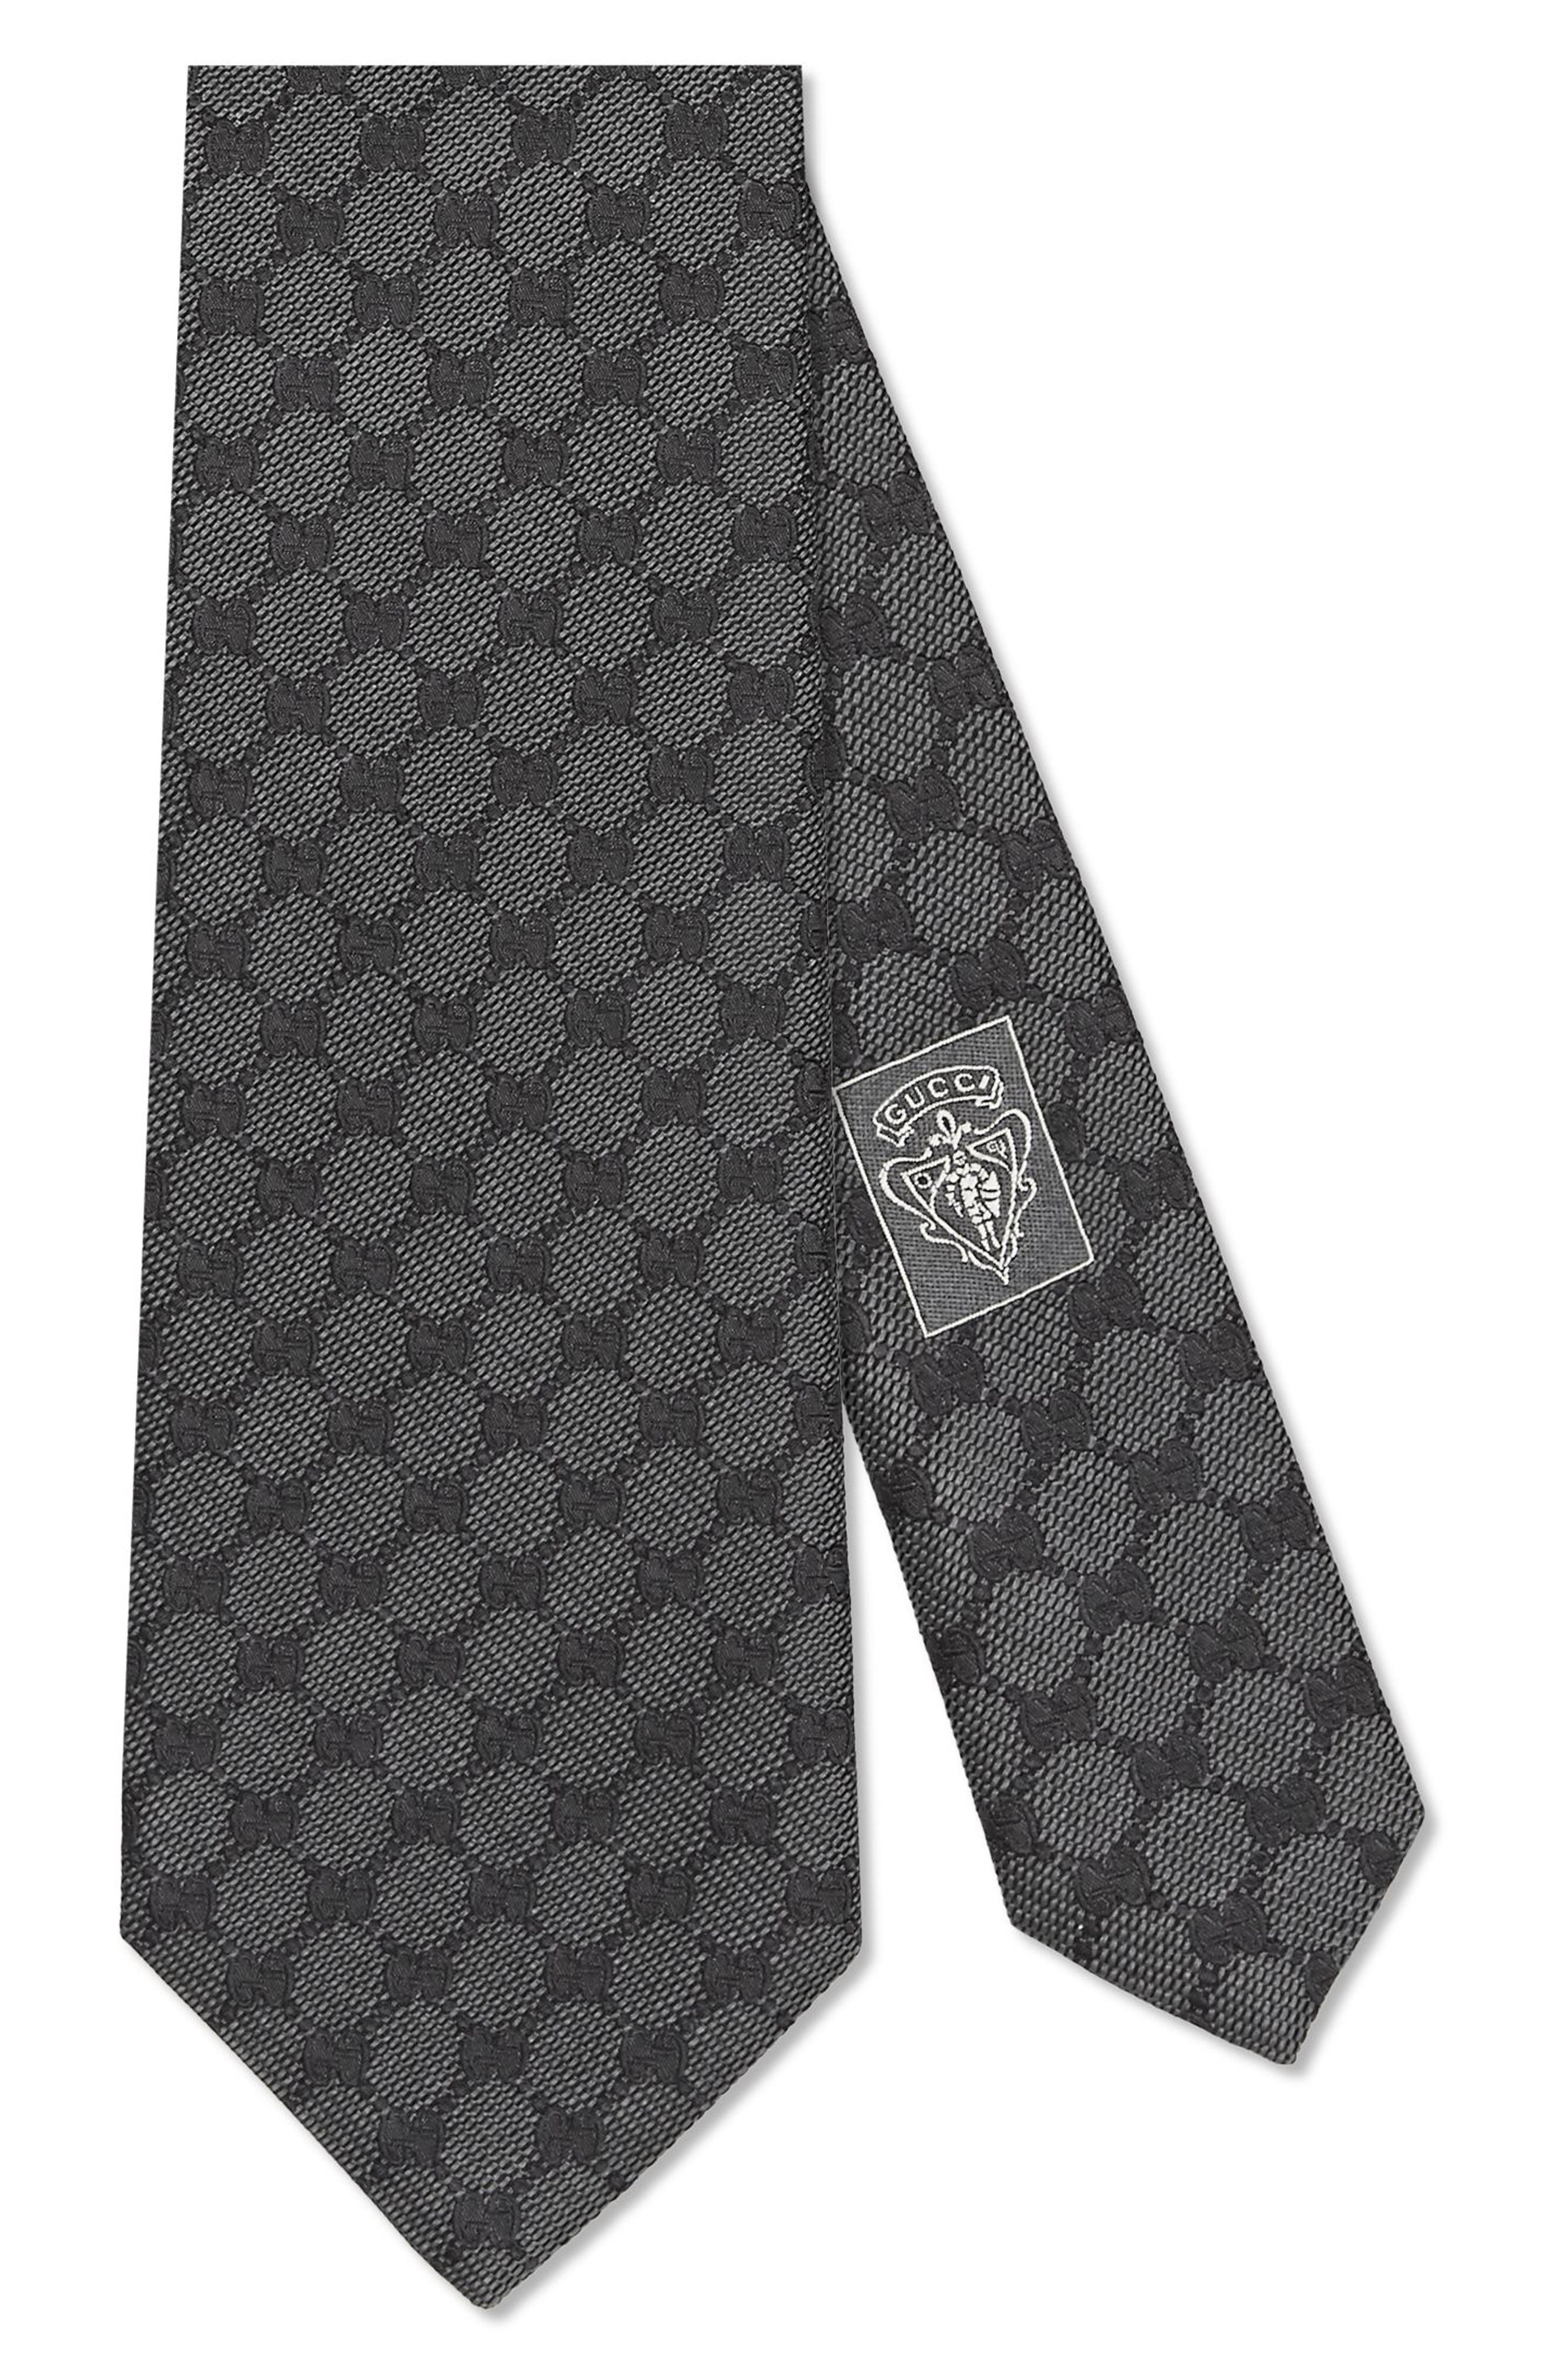 Main Image - Gucci Arend Print Silk Tie